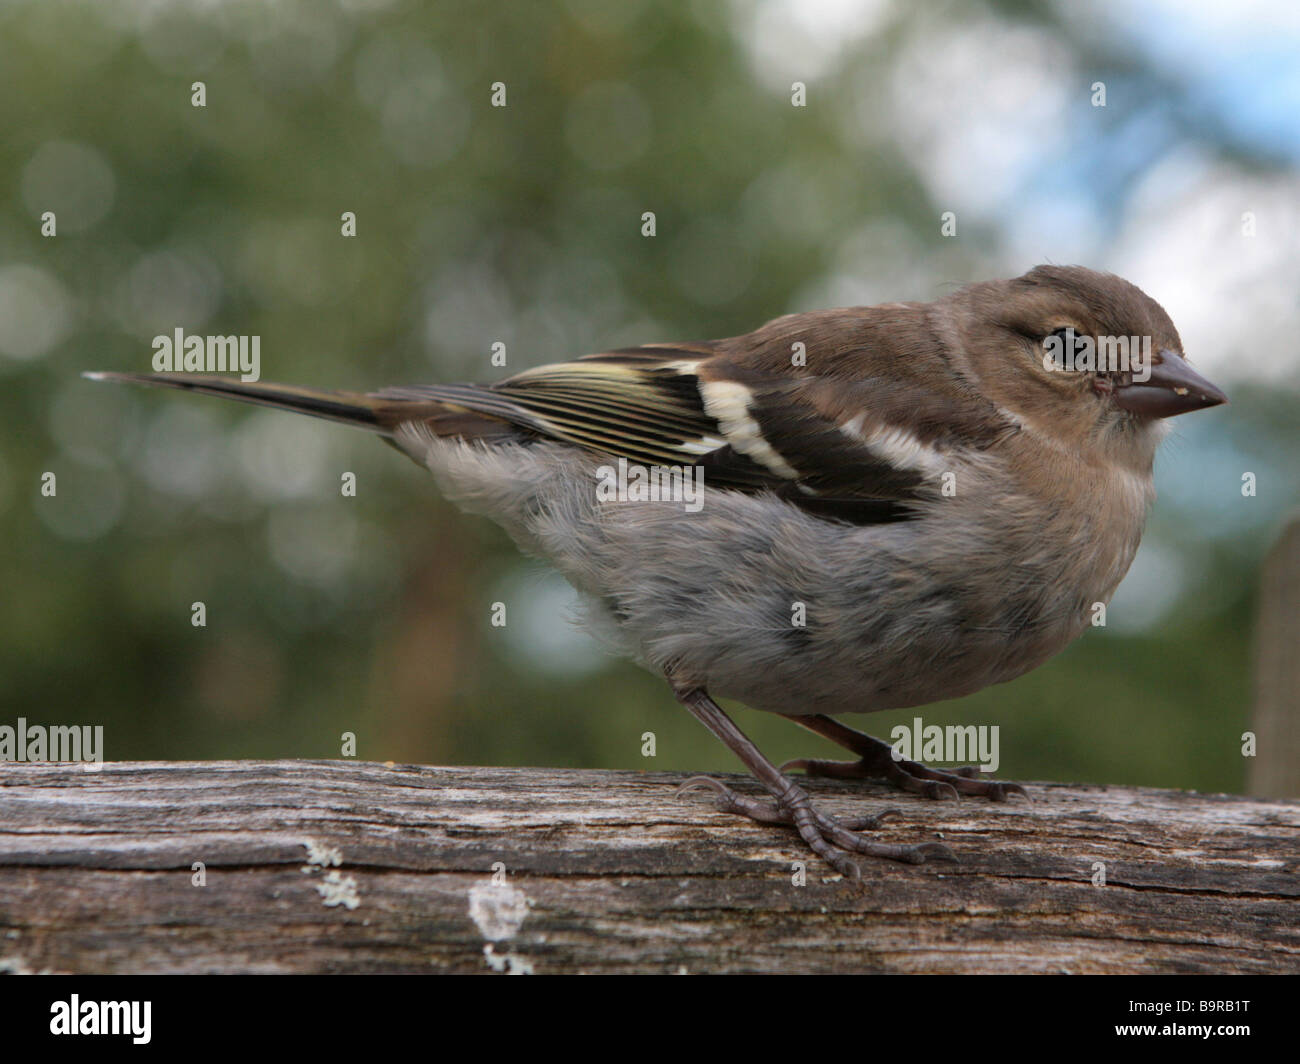 A small sparrow. - Stock Image